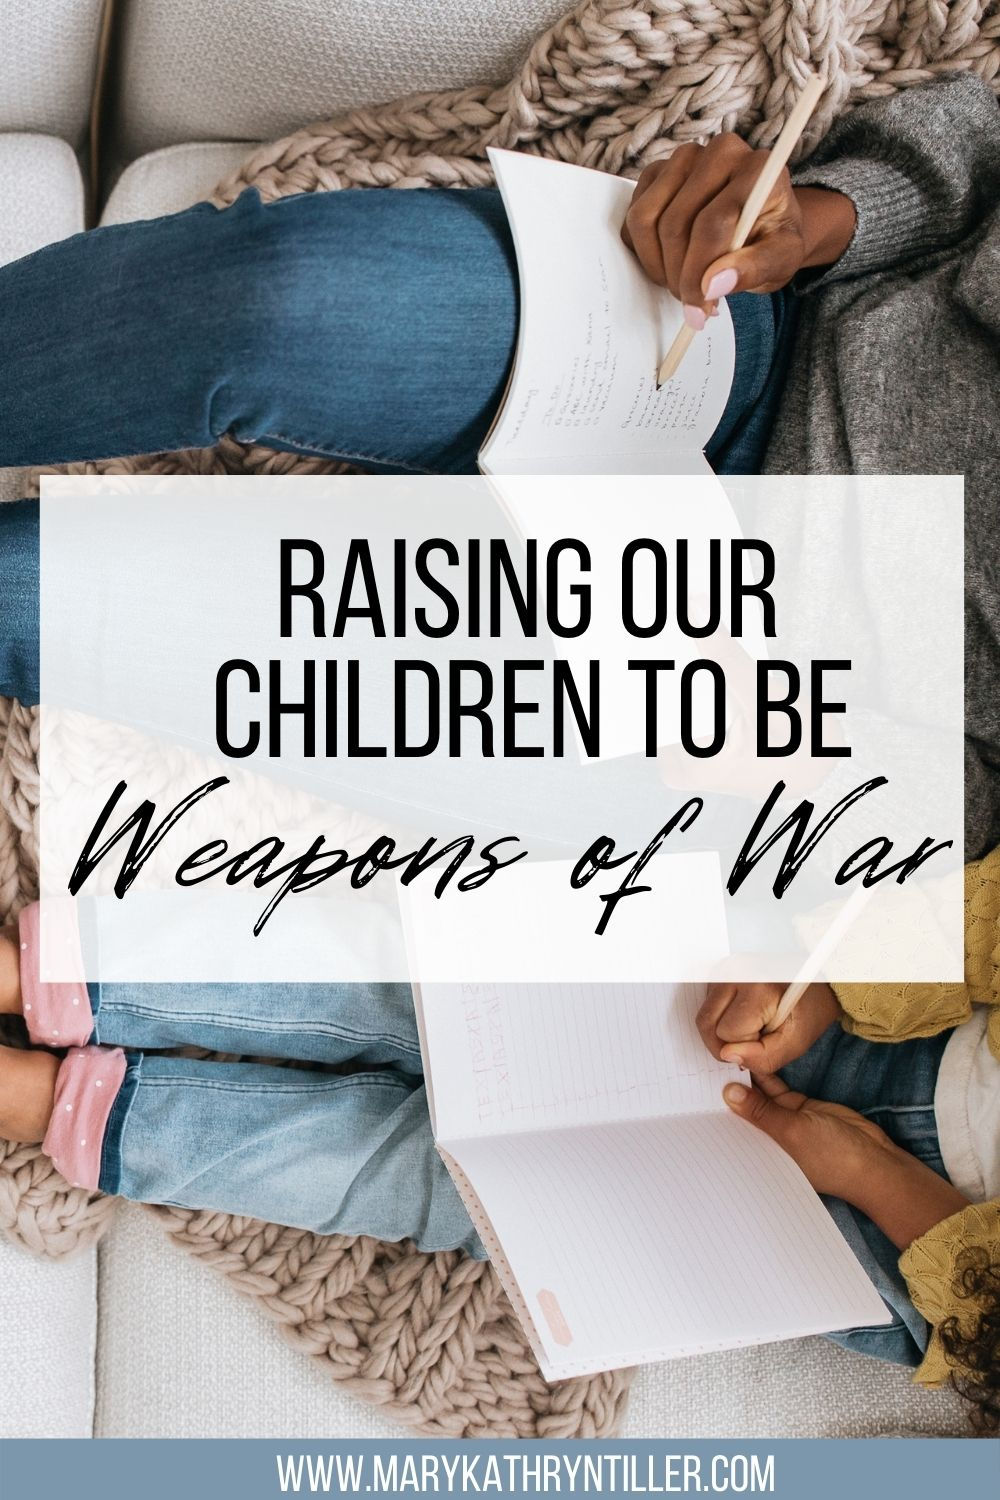 Raising our children to be weapons of war